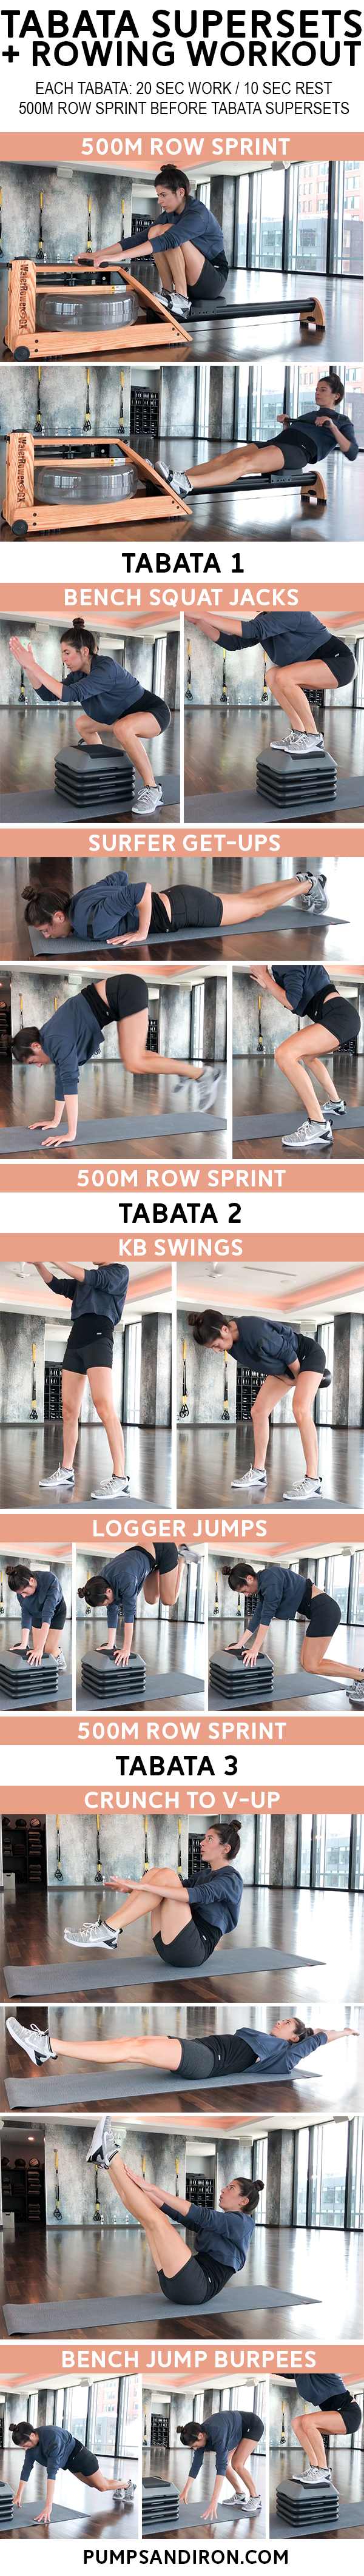 Rowing Tabata Supersets Workout Health And Fitness Pinterest Superset Circuit Leg Up On Not Sure What To Do At The Gym Give This Quick A Try Youll Need Rower Stepper Kettlebell Mat